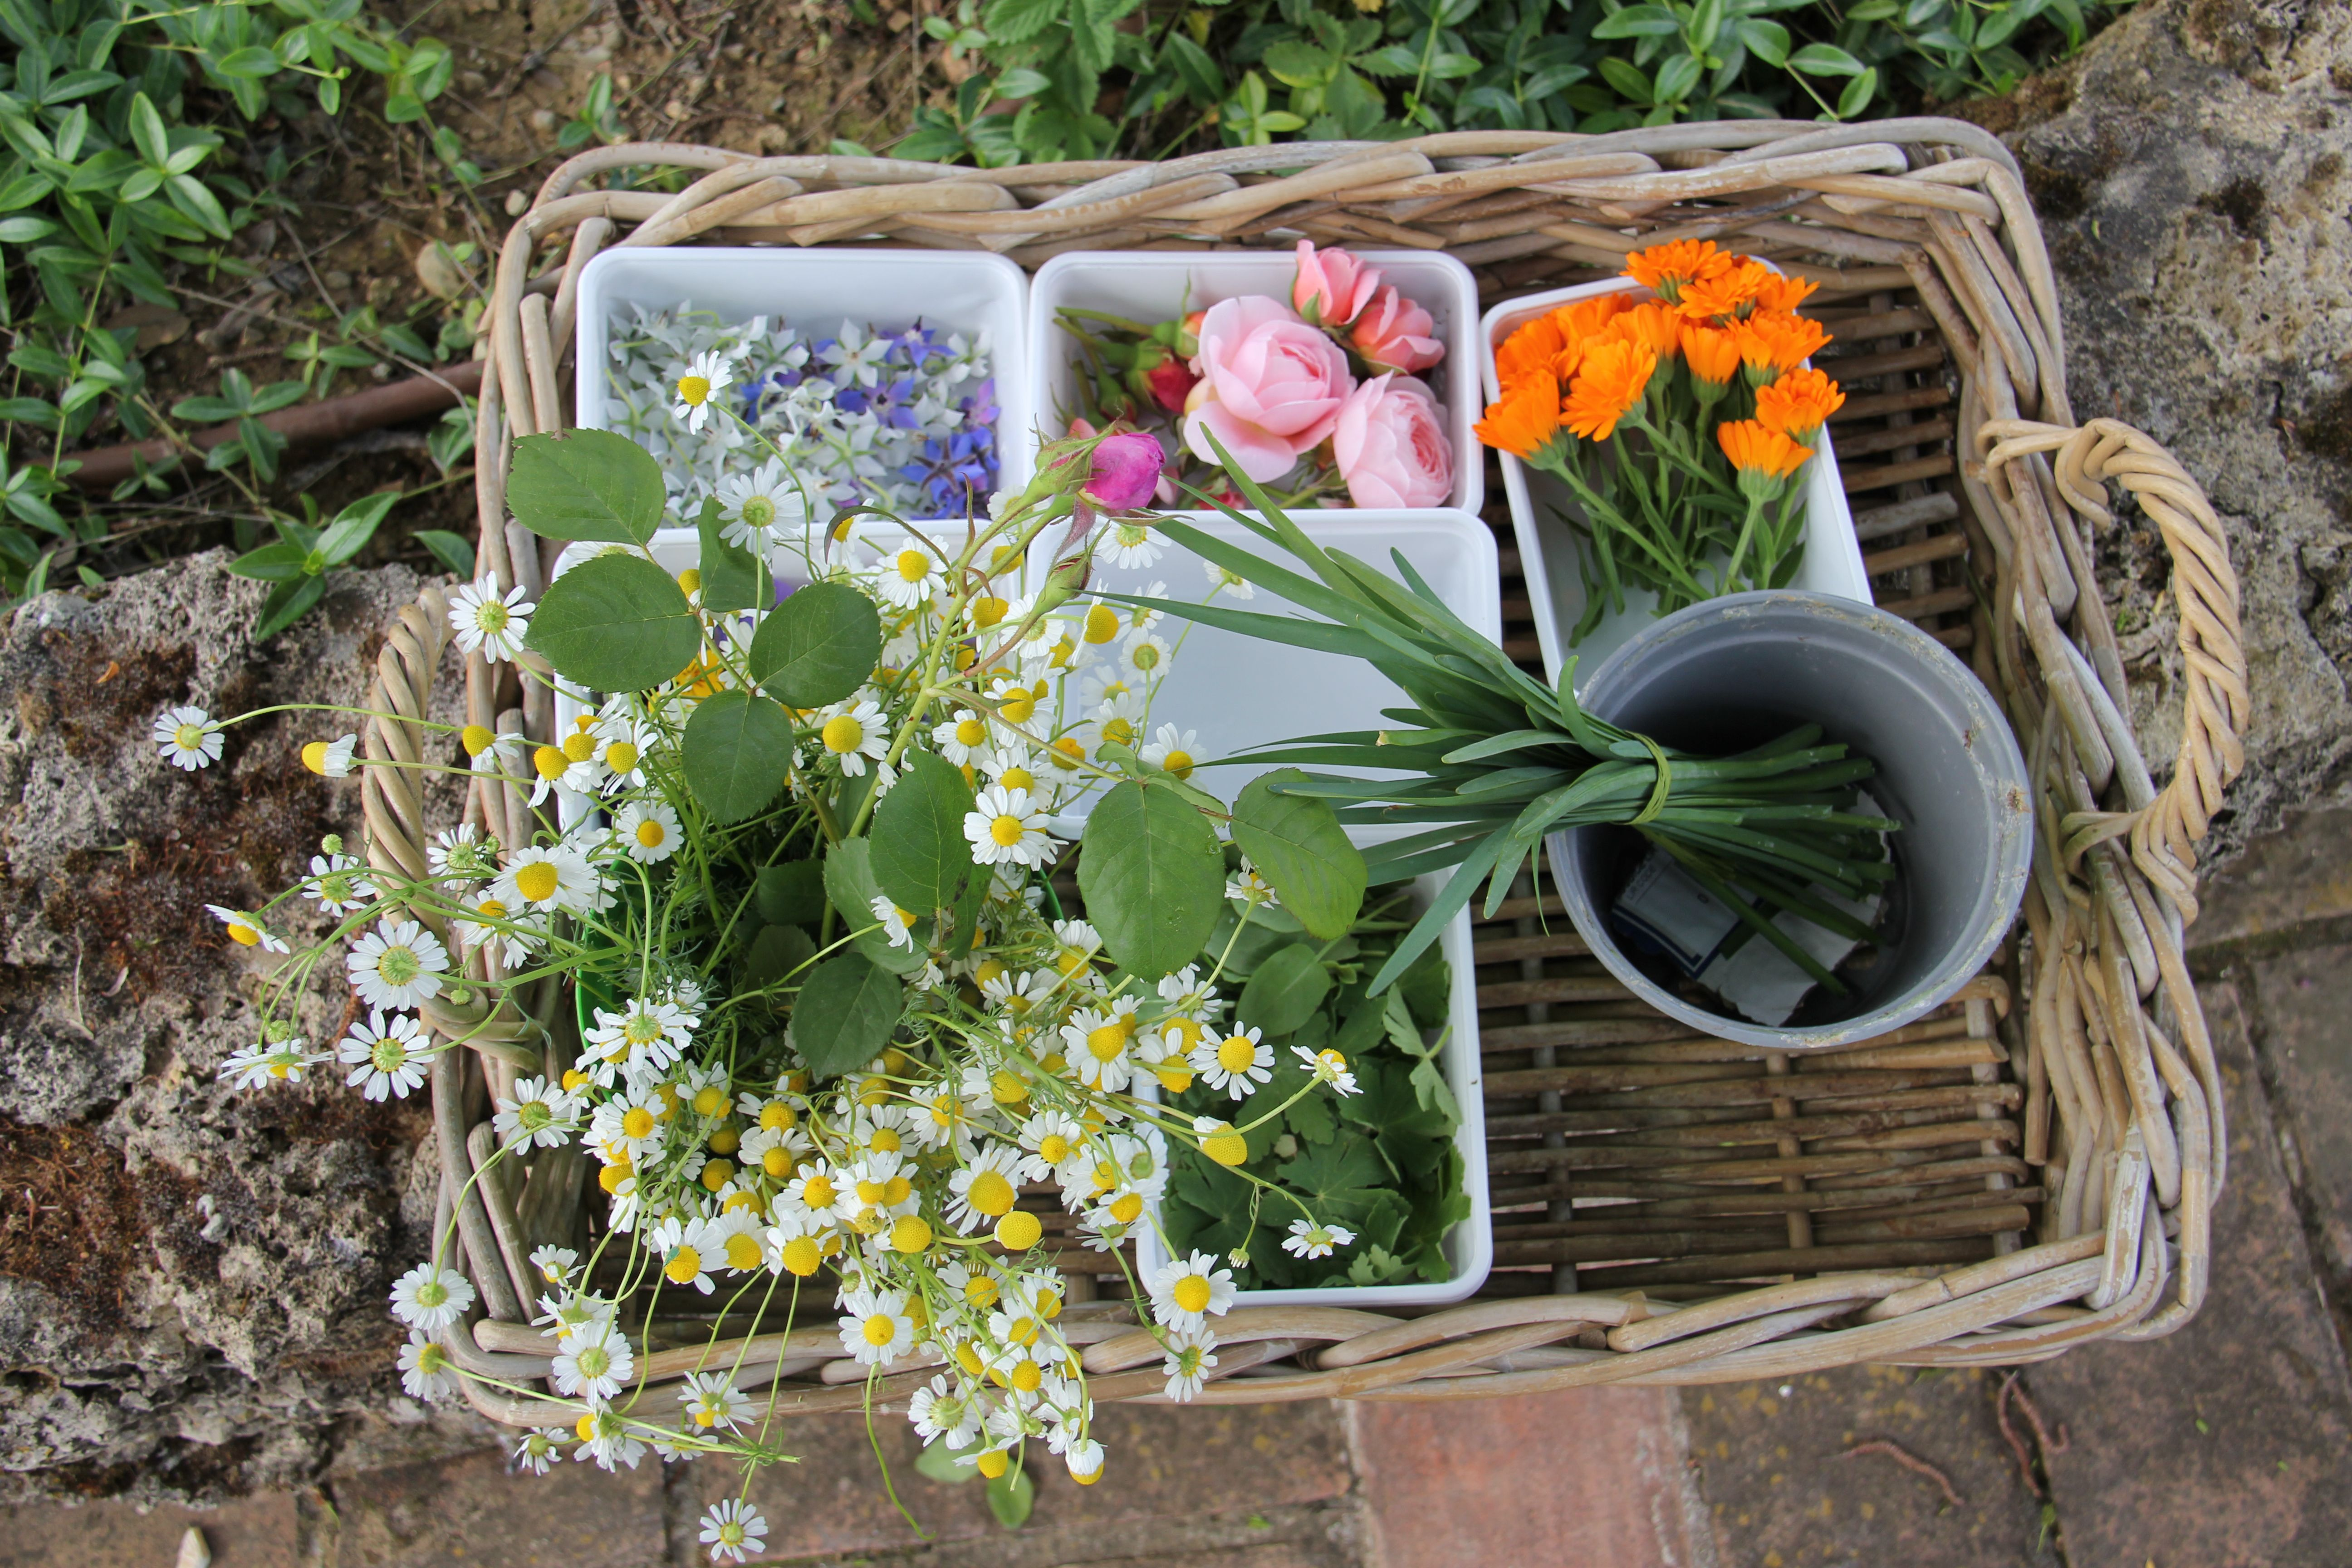 The herbs and flowers are chosen for the evening's presentations